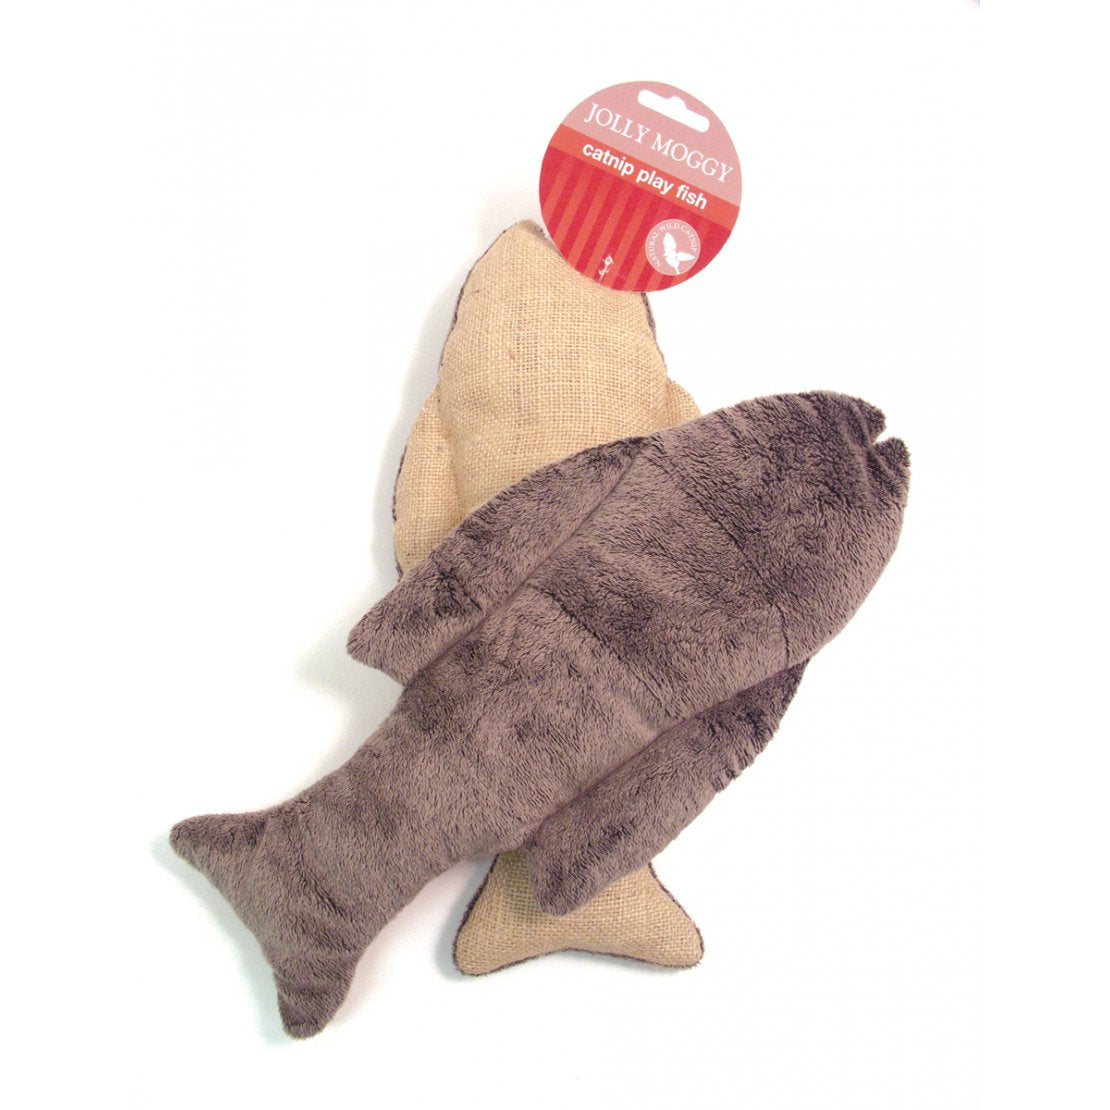 Jolly Moggy Catnip Play Fish Cat Toy - Pica's Pets